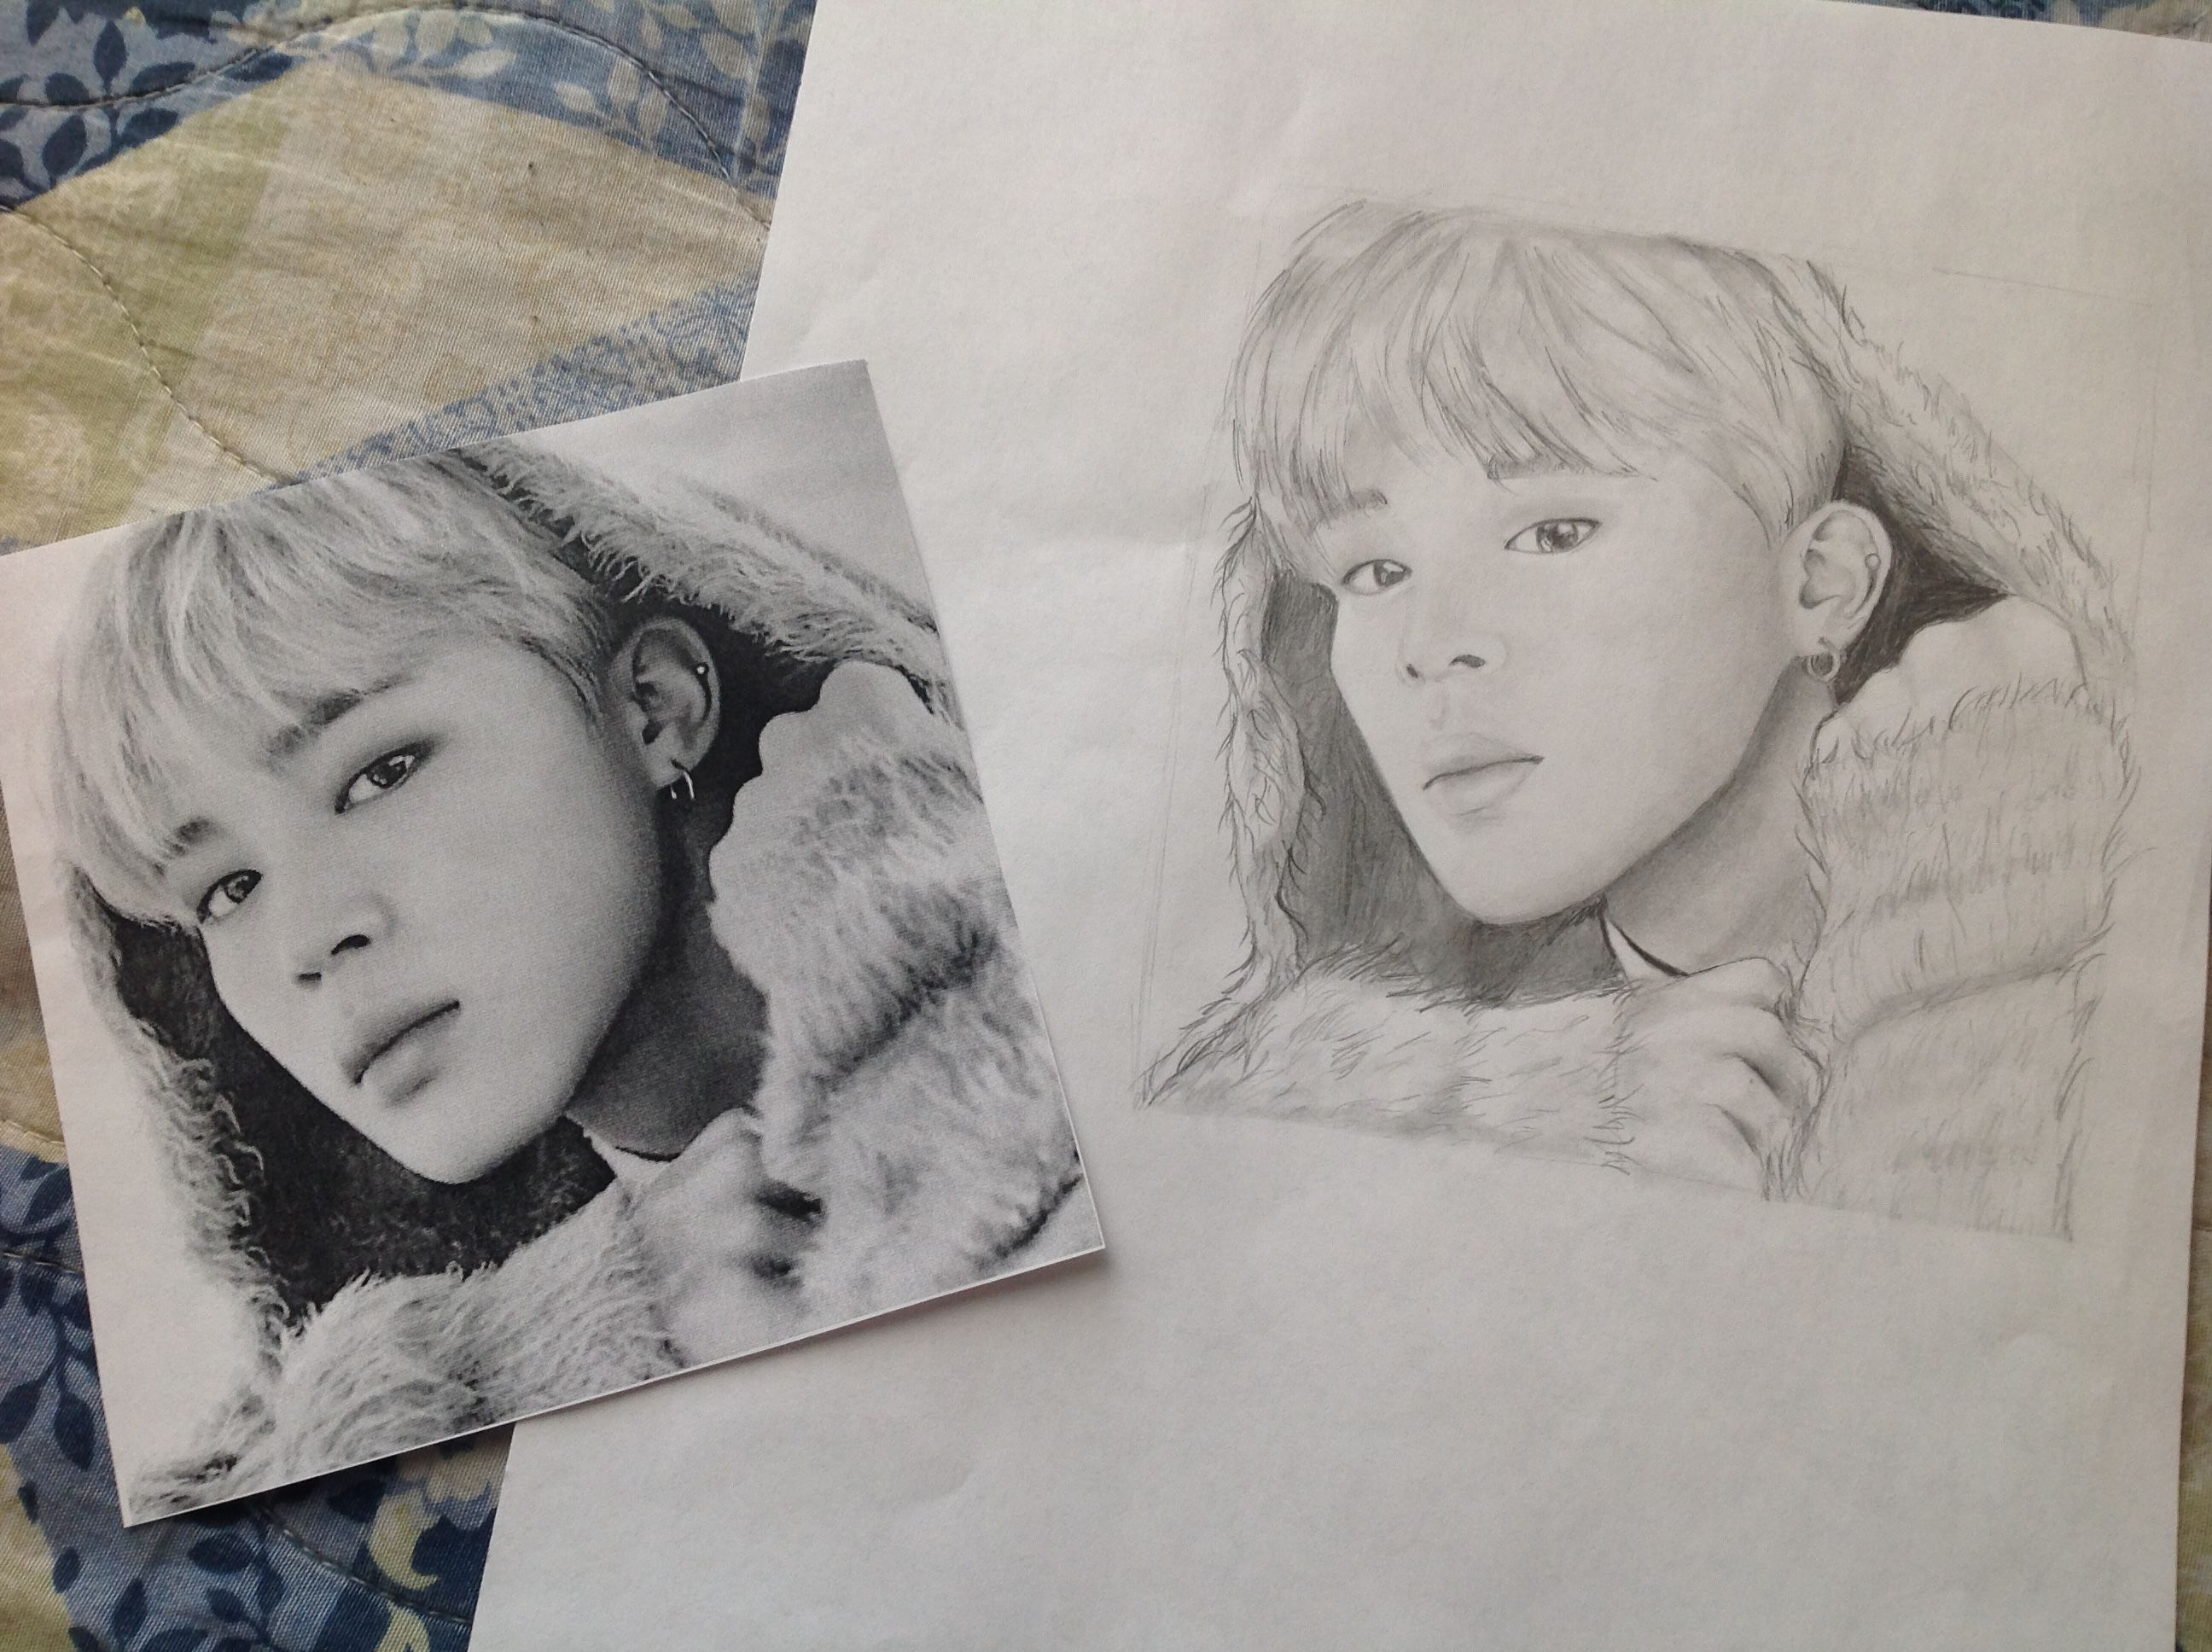 Free Drawing Of Bts Member Jimin Used A 2b Pencil And A Blender